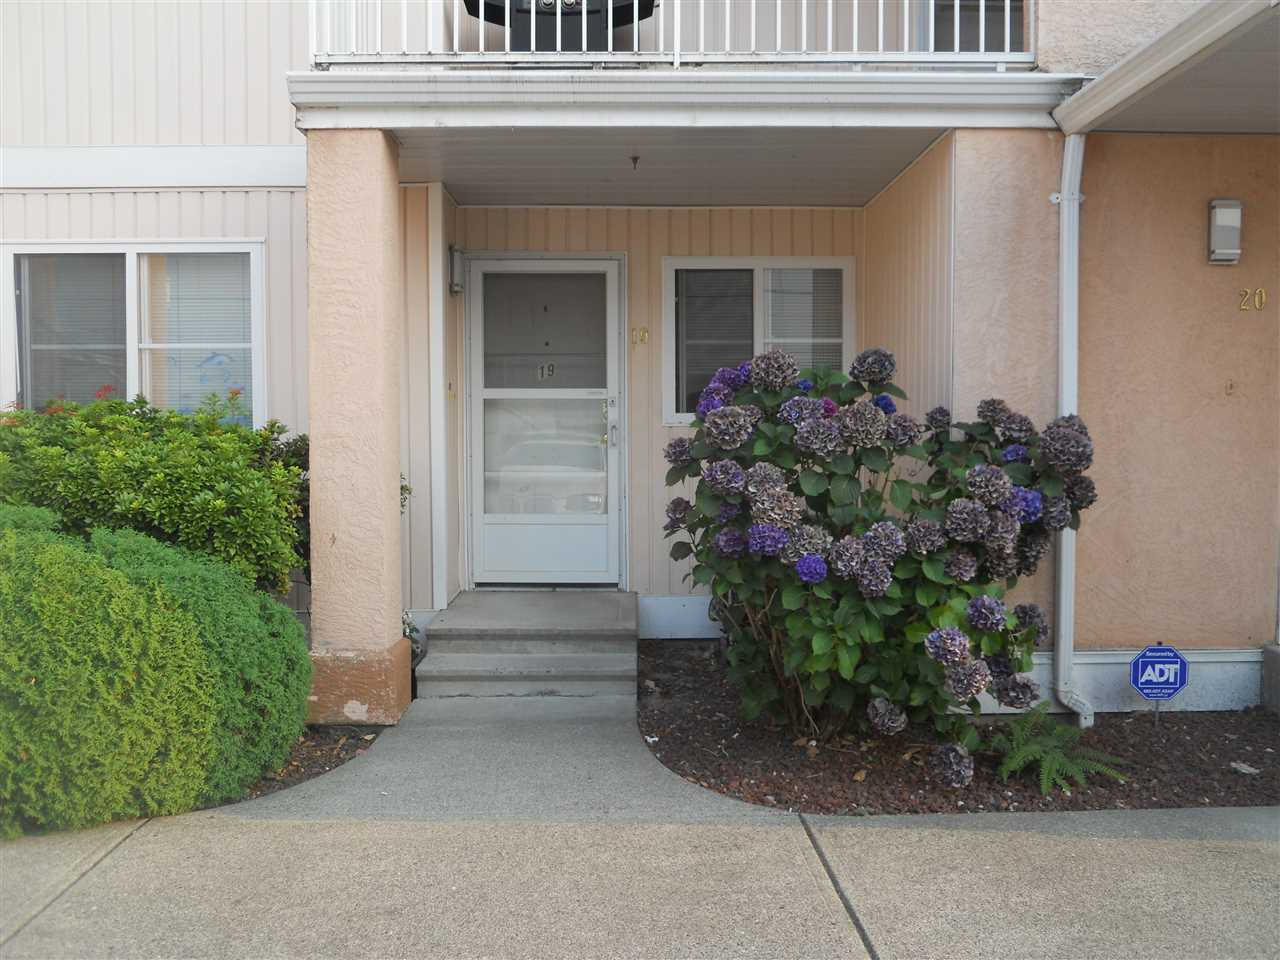 Townhouse at 19 5915 VEDDER ROAD, Unit 19, Sardis, British Columbia. Image 1